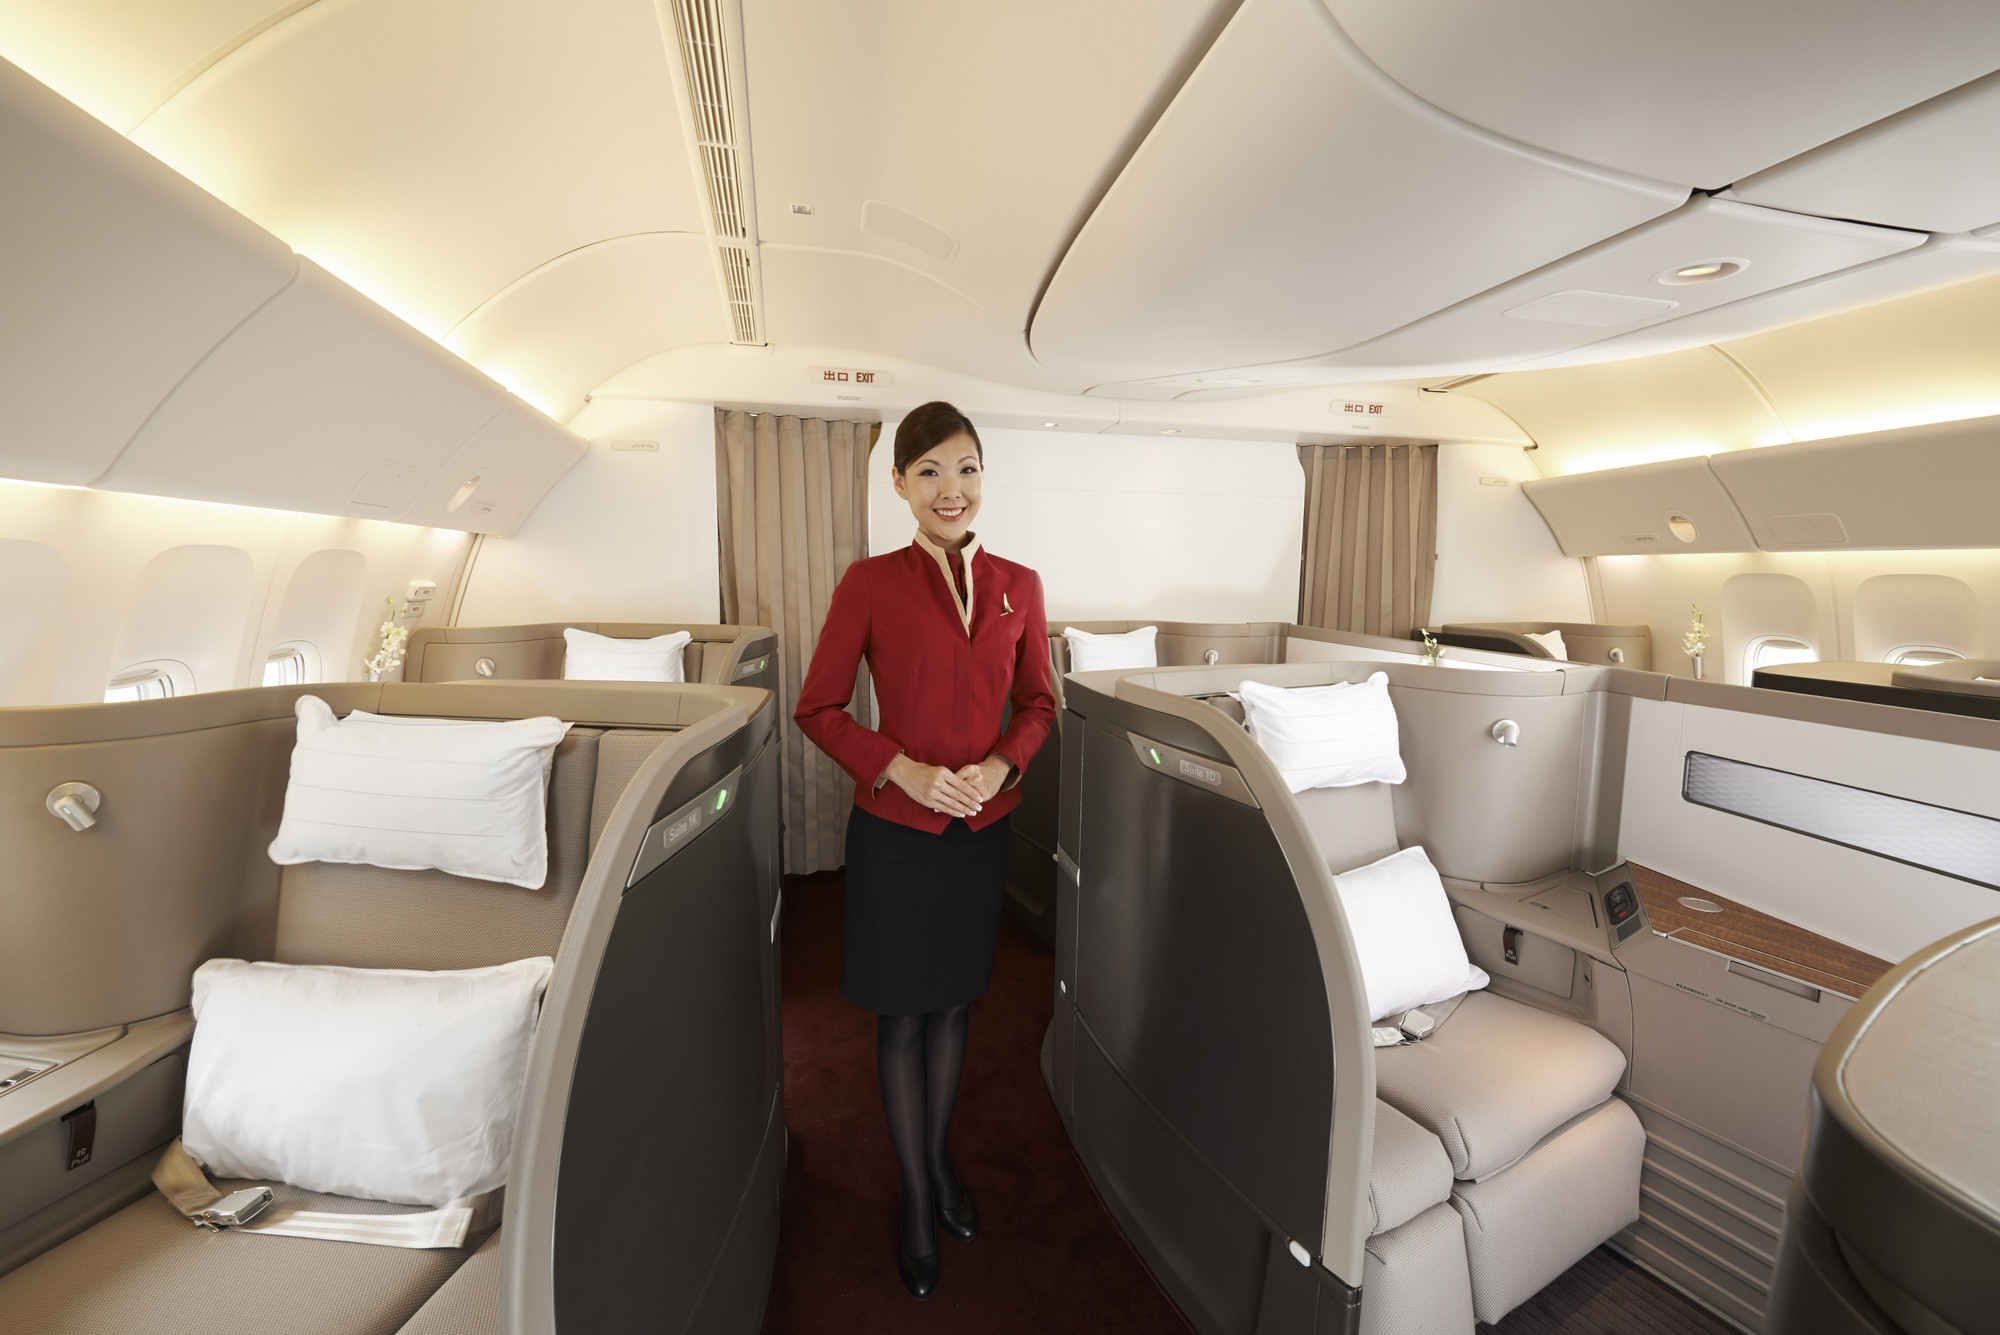 Foster + Partners Designs First Class Cabin, First Class Cabin designed by Foster + Partners. © Steve Wong